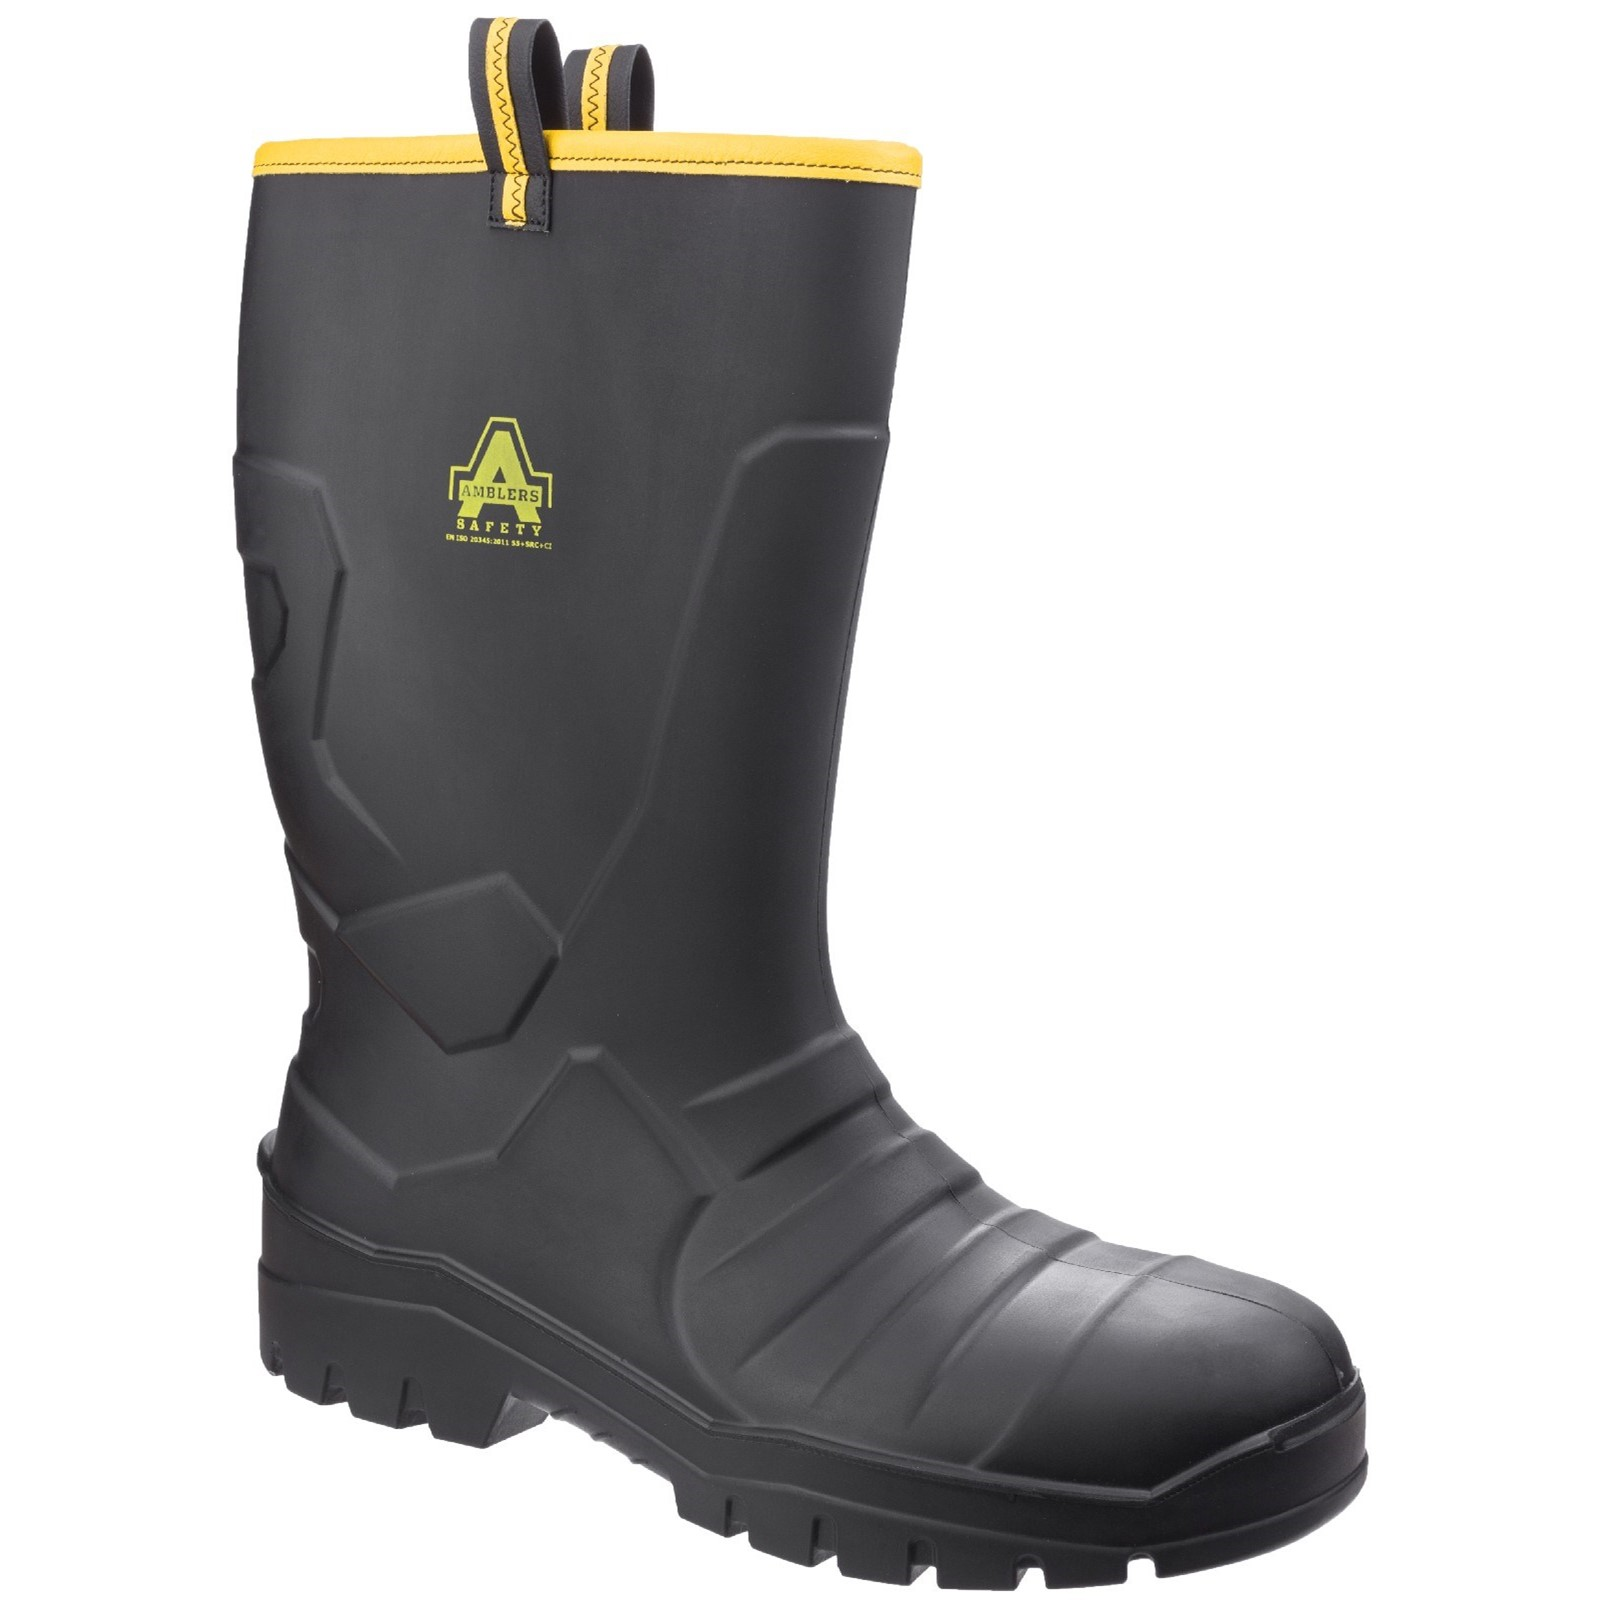 Amblers Safety Unisex AS1008 Volle Sicherheit Rigger Schuhe Stiefel